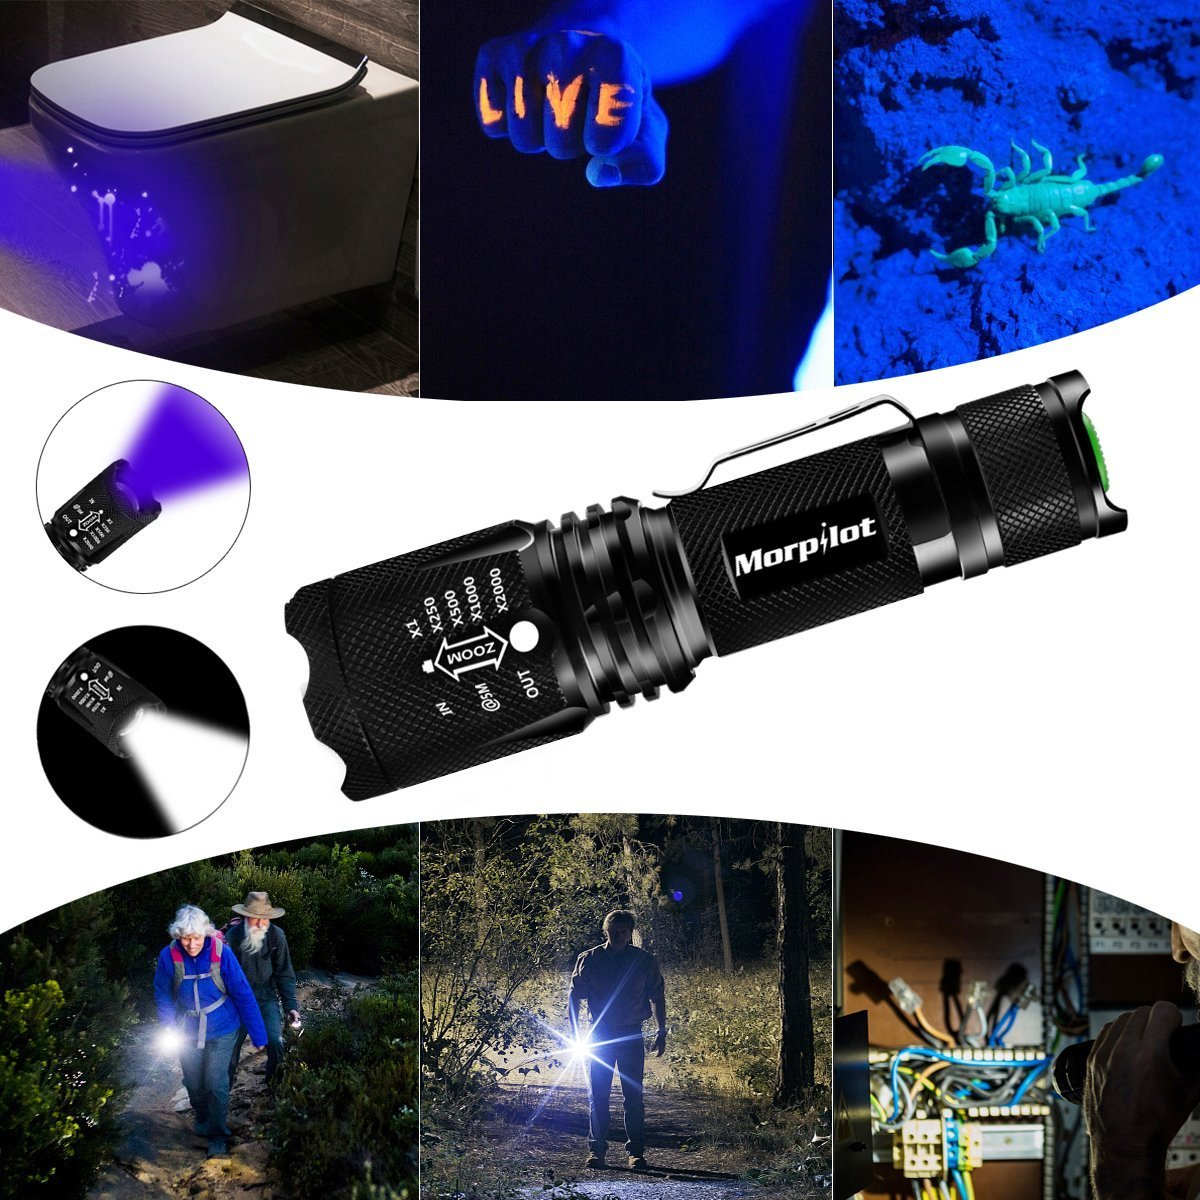 morpilot LED Torch UV Torch 2 in 1 Black Light Torches, 395nm UV Flashlights, Super Bright 500 Lumens LED Flashlight, 4 Modes Light Adjustable Focus, Aluminum Alloy Body, IPX4 Waterproof, Black